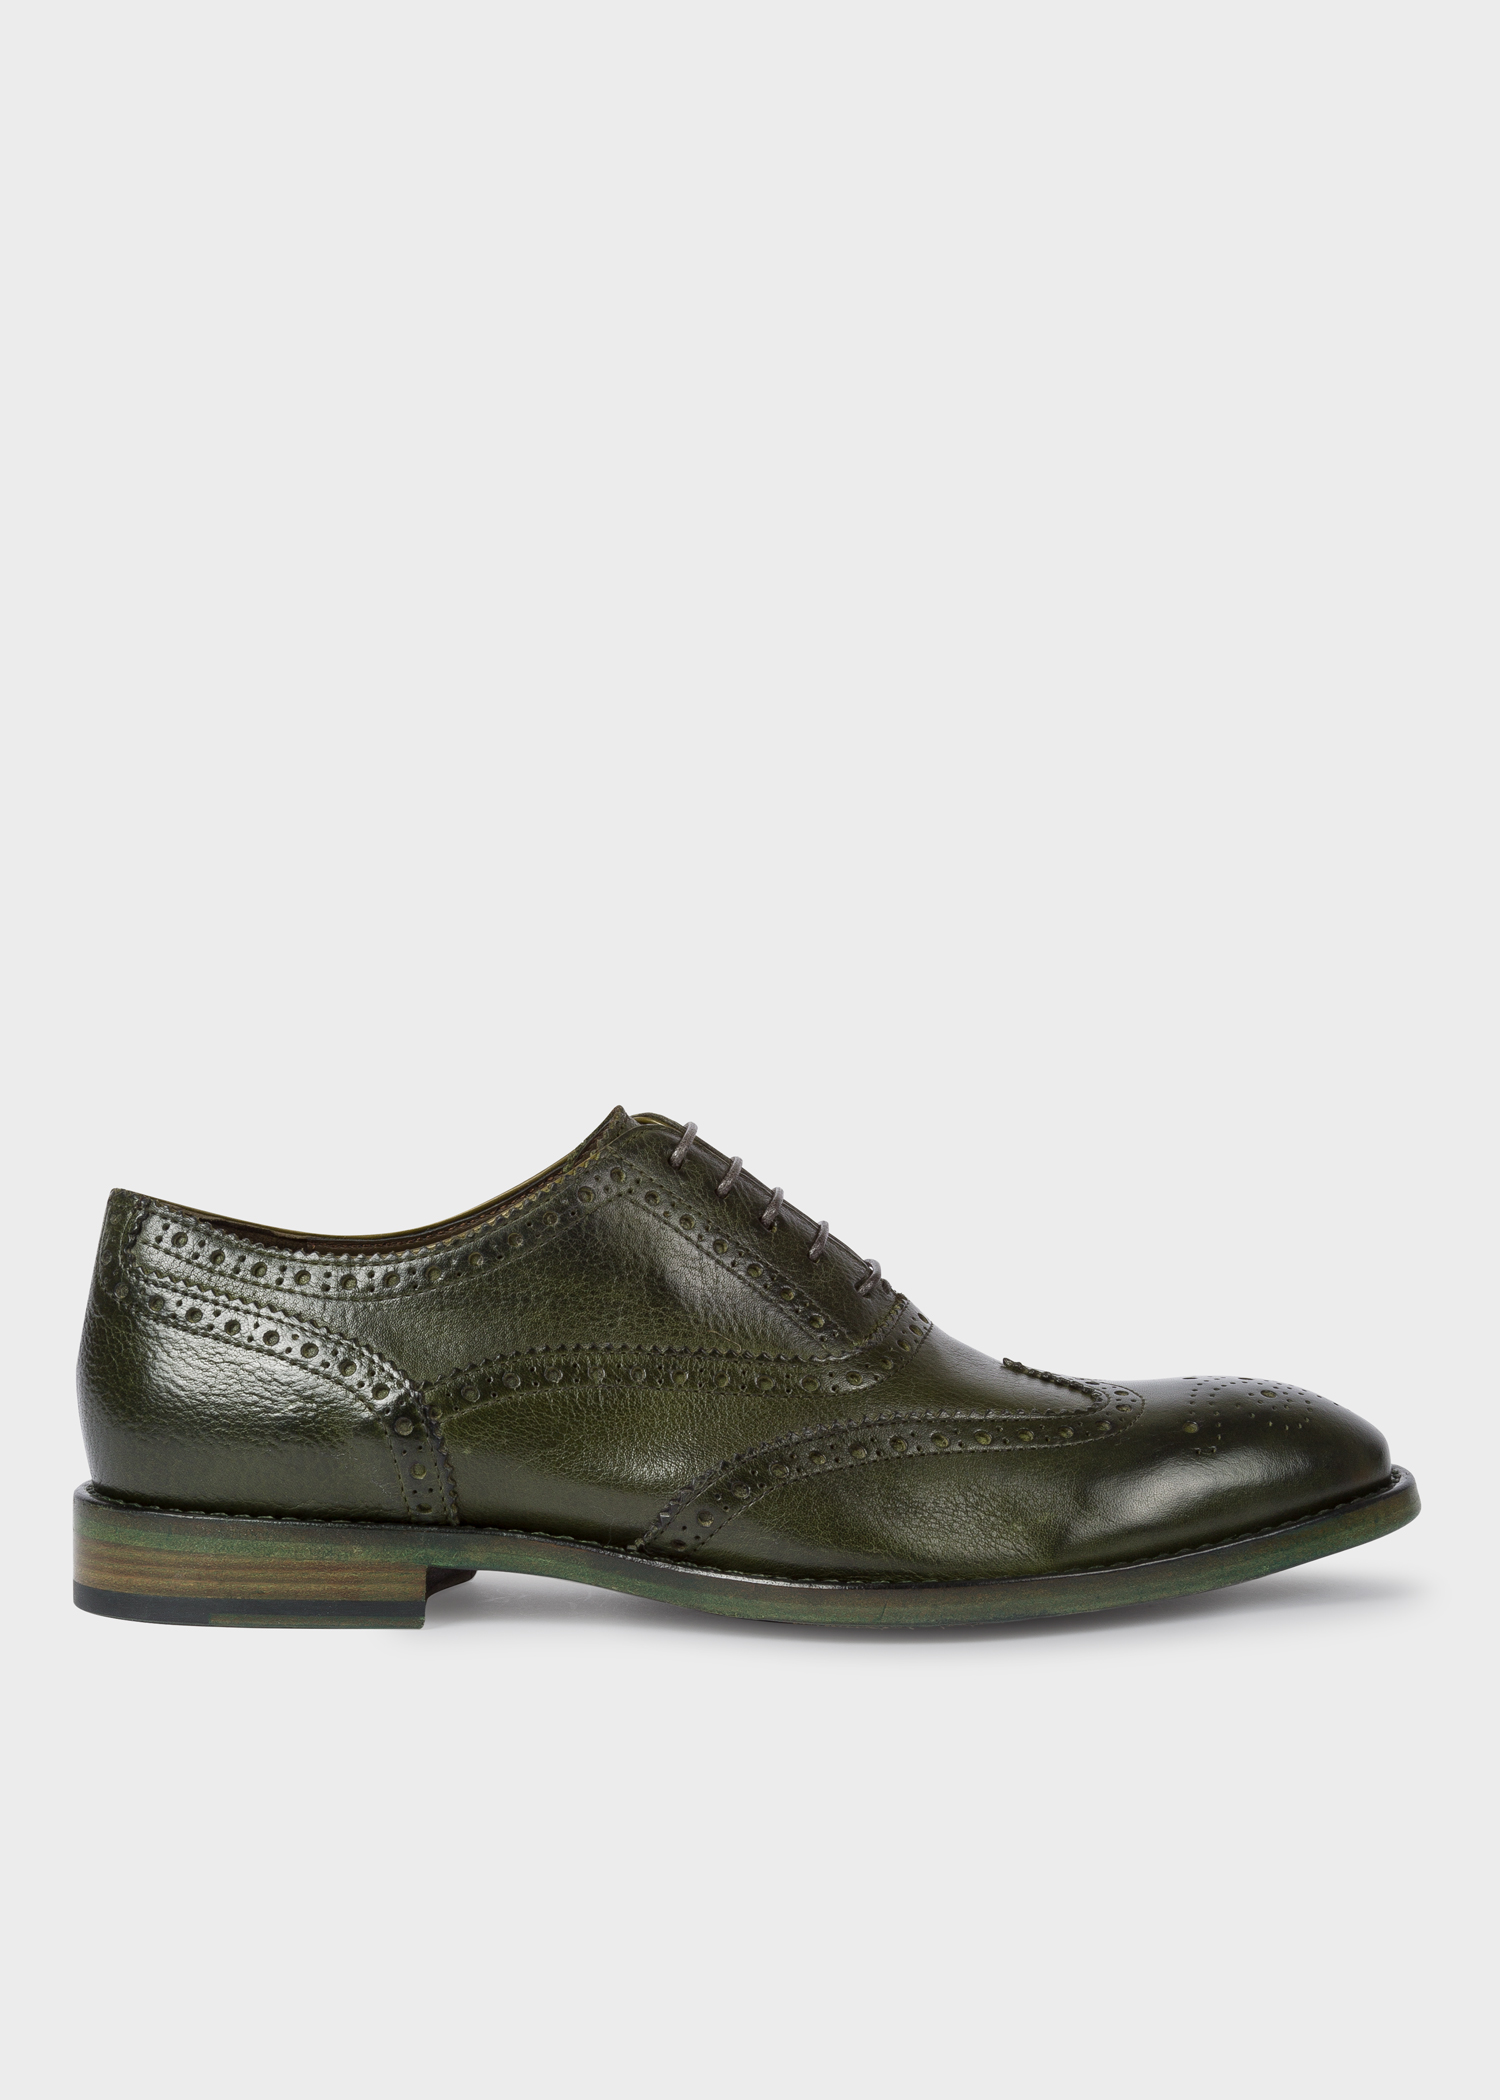 5f7d5d94d3d Men's Dark Green Leather 'Munro' Flexible Travel Brogues - Paul Smith